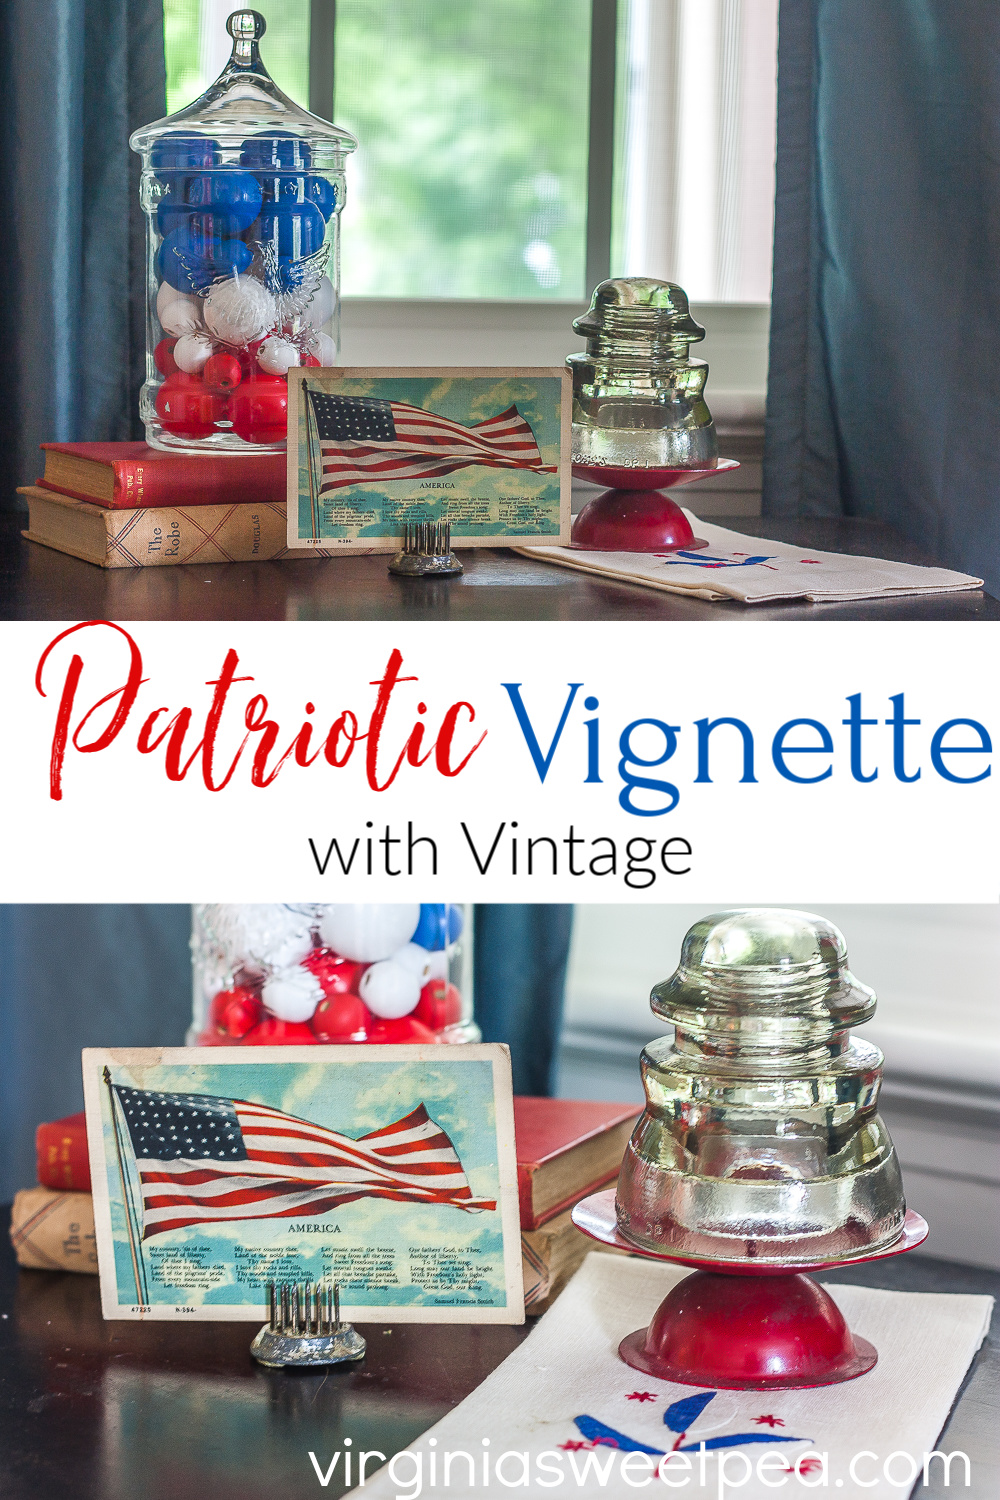 Patriotic Vignette with Vintage - See the details of a vignette for patriotic holidays using vintage. #patriotic #patrioticdecor #patrioticvignette #July4decor #4thofjuly #4thofjulydecor #4thofjulyvignette #diybowlfiller via @spaula